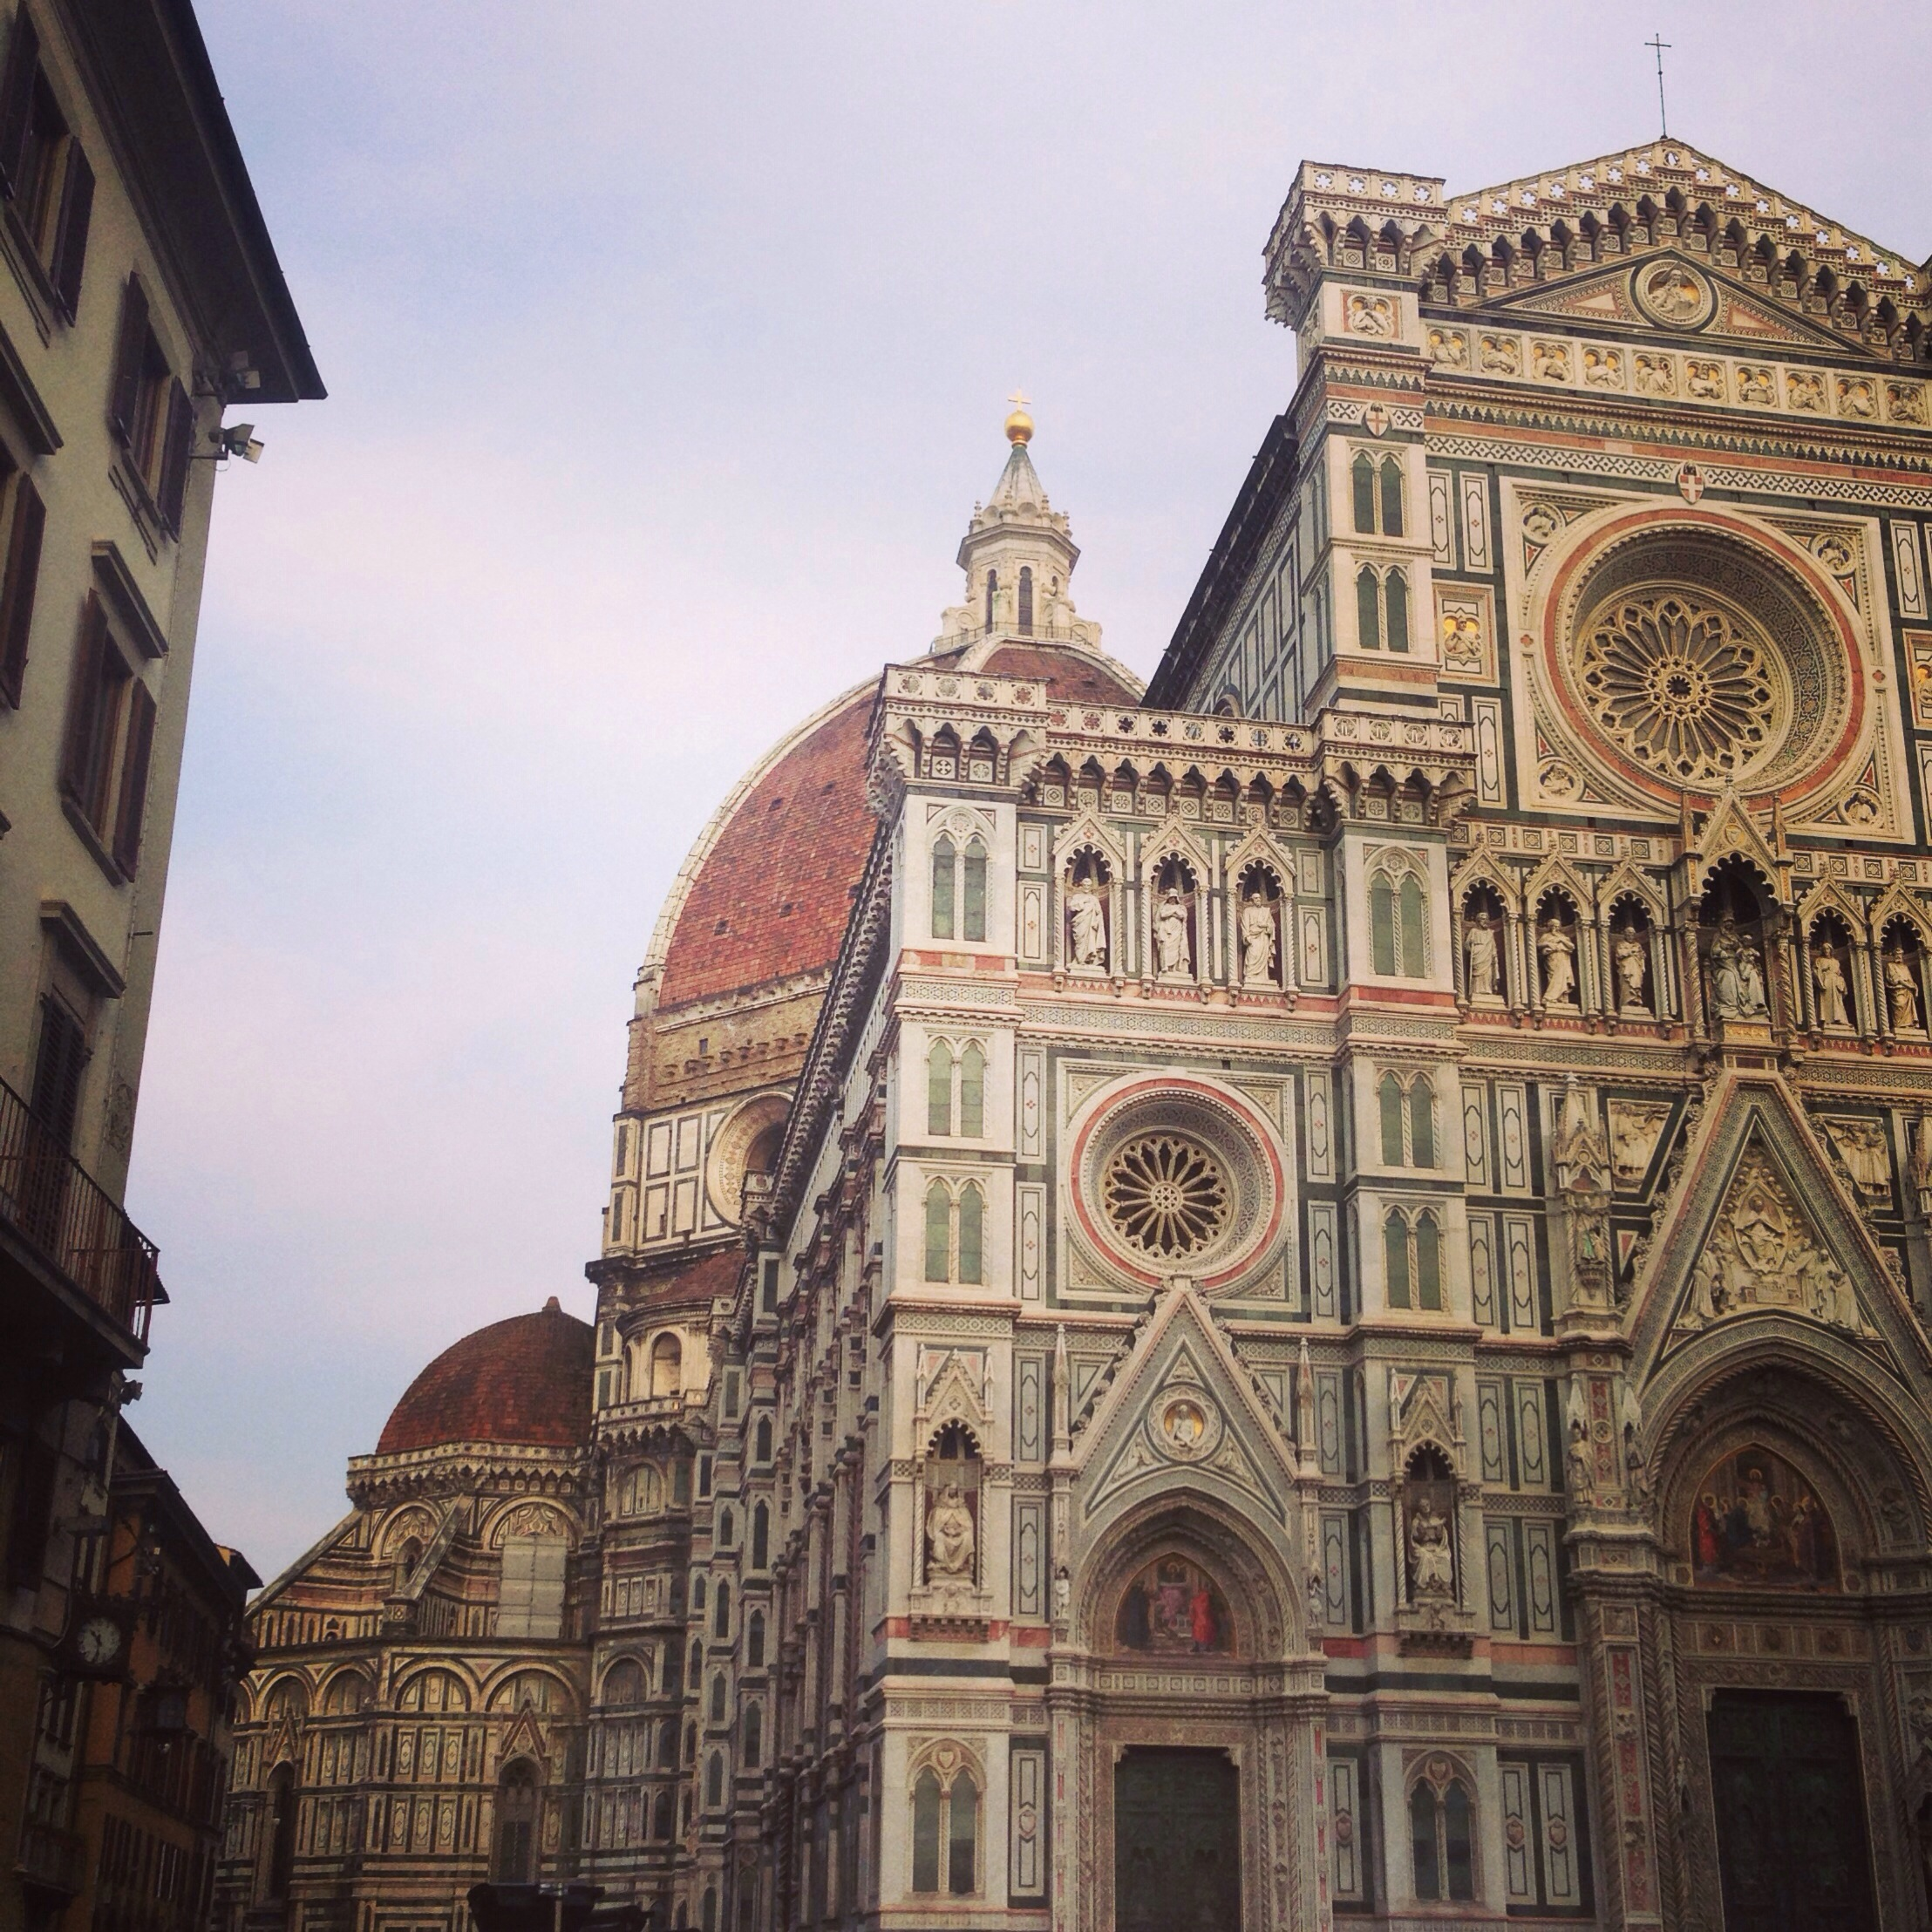 The imposing Duomo di Firenze